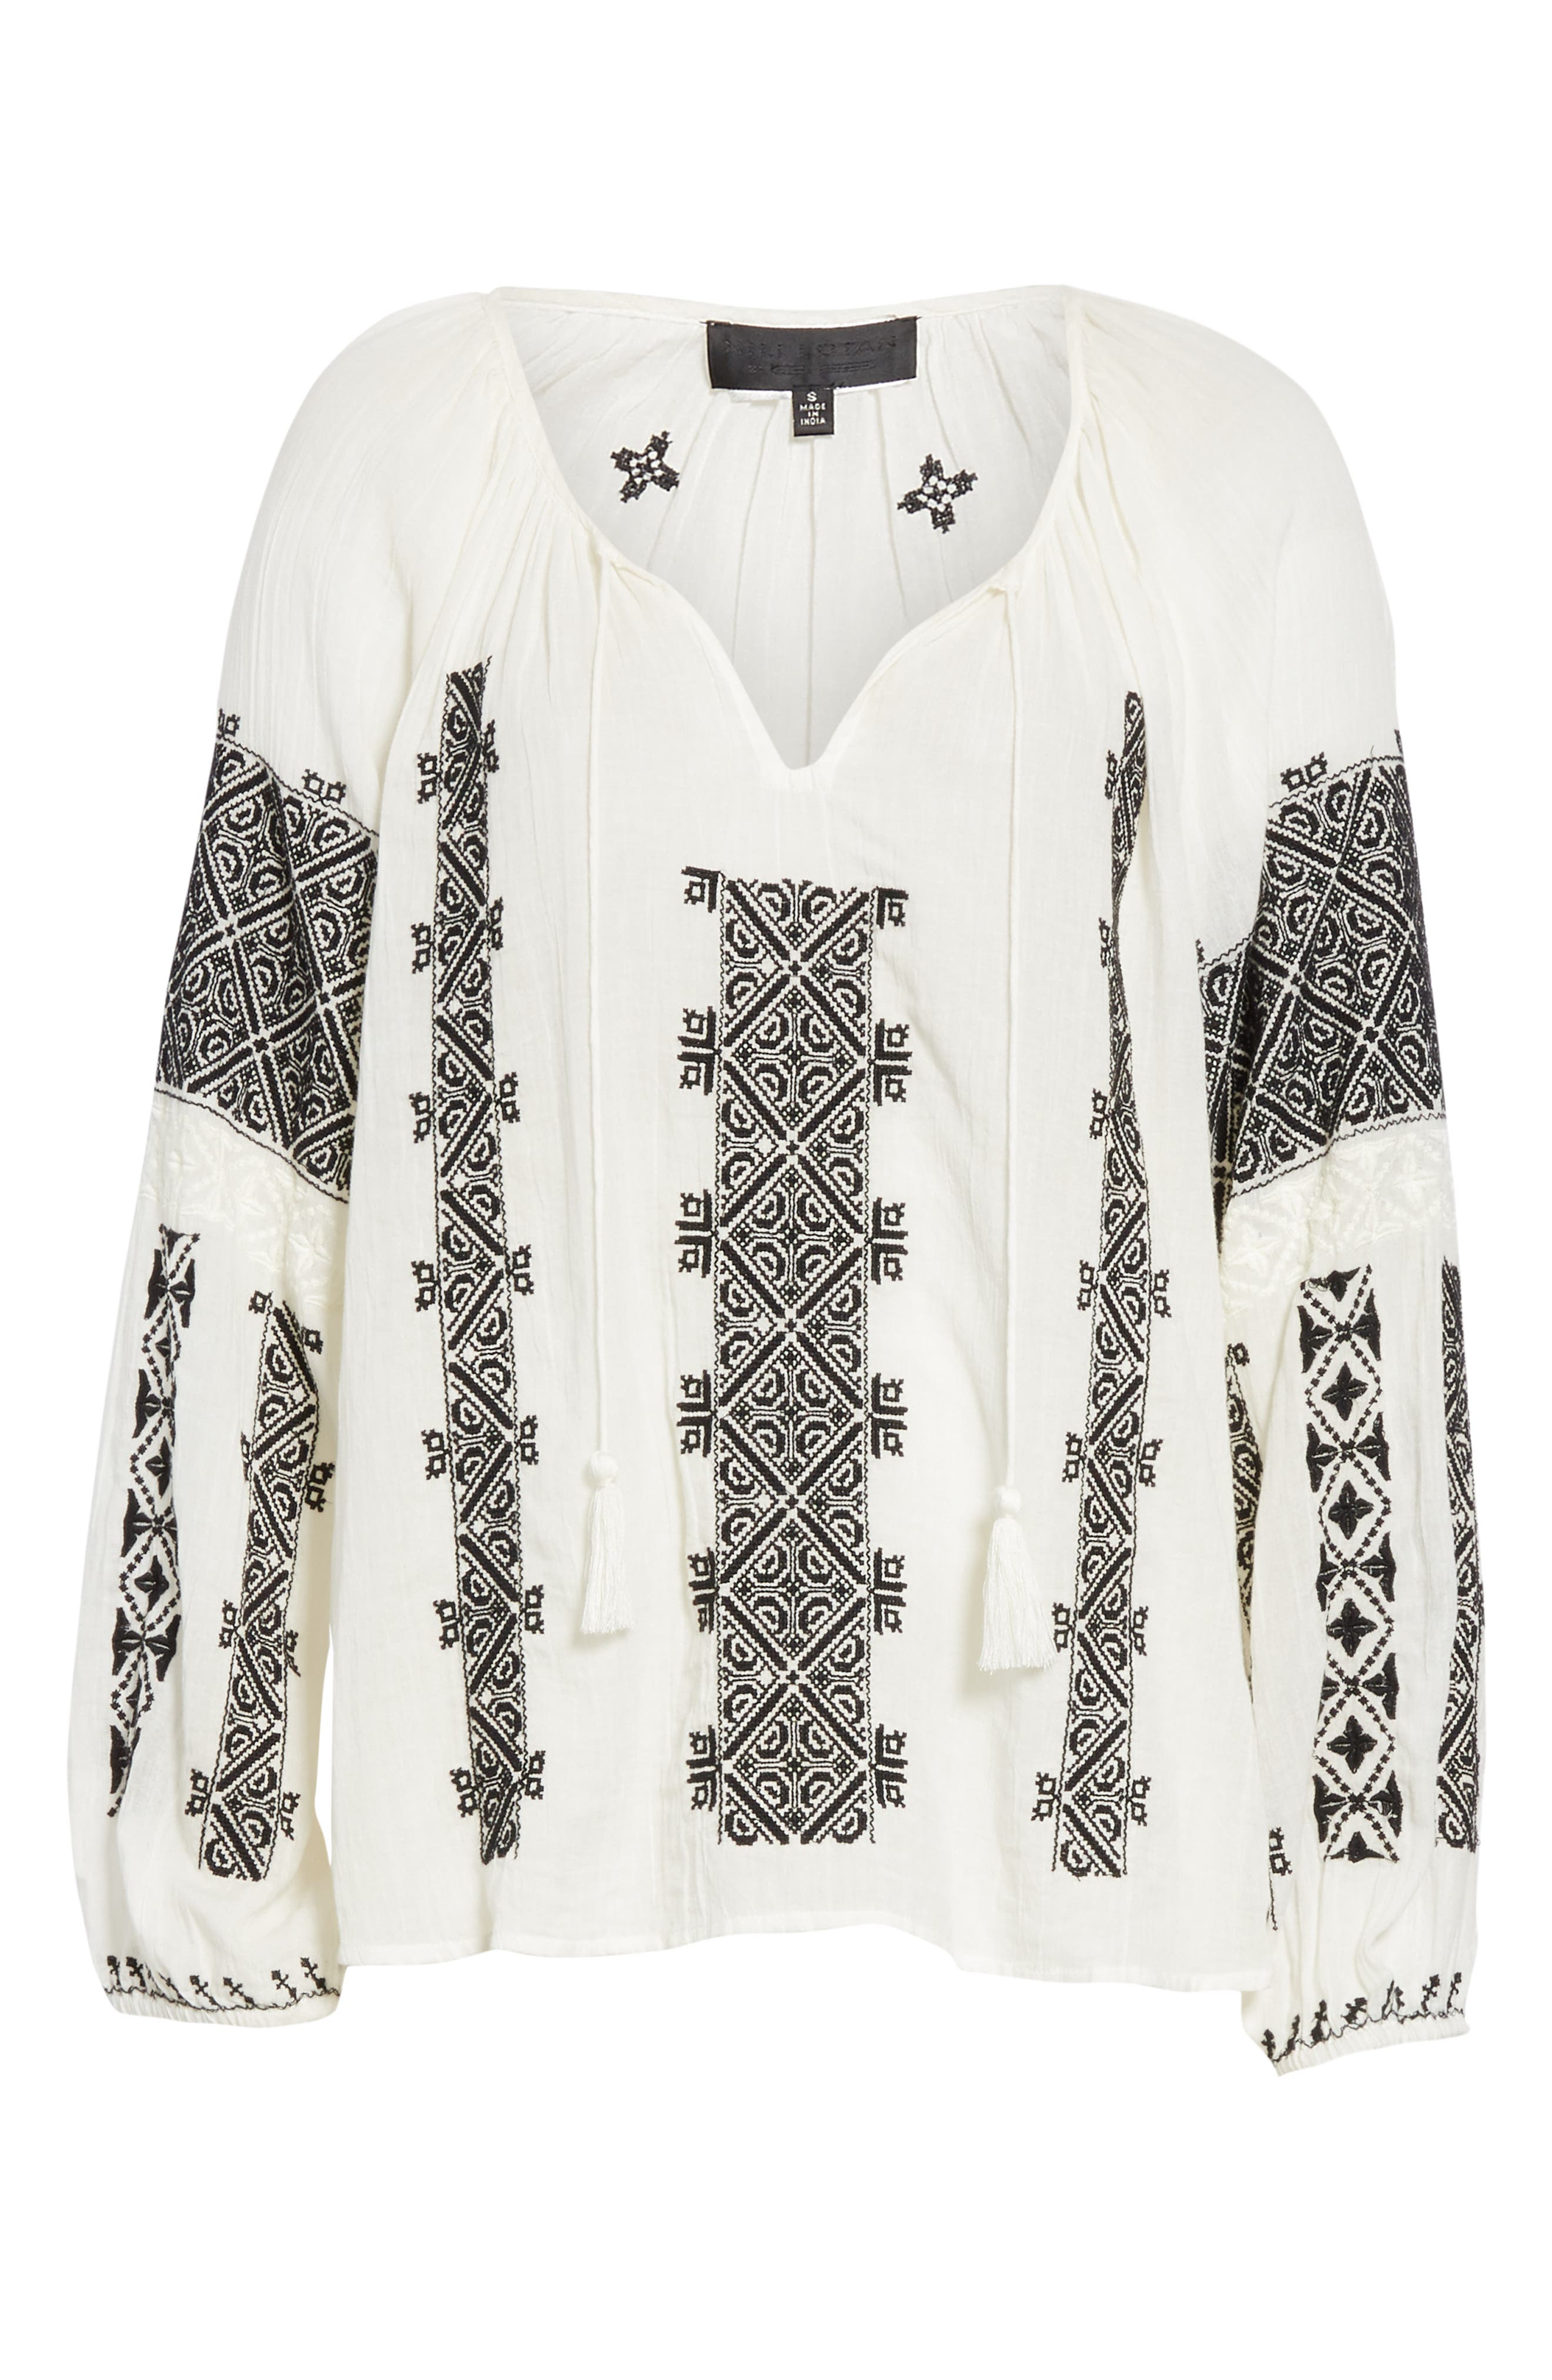 NILI LOTAN, Alassio Embroidered Blouse, Alternate thumbnail 6, color, IVORY WITH BLACK EMBROIDERY